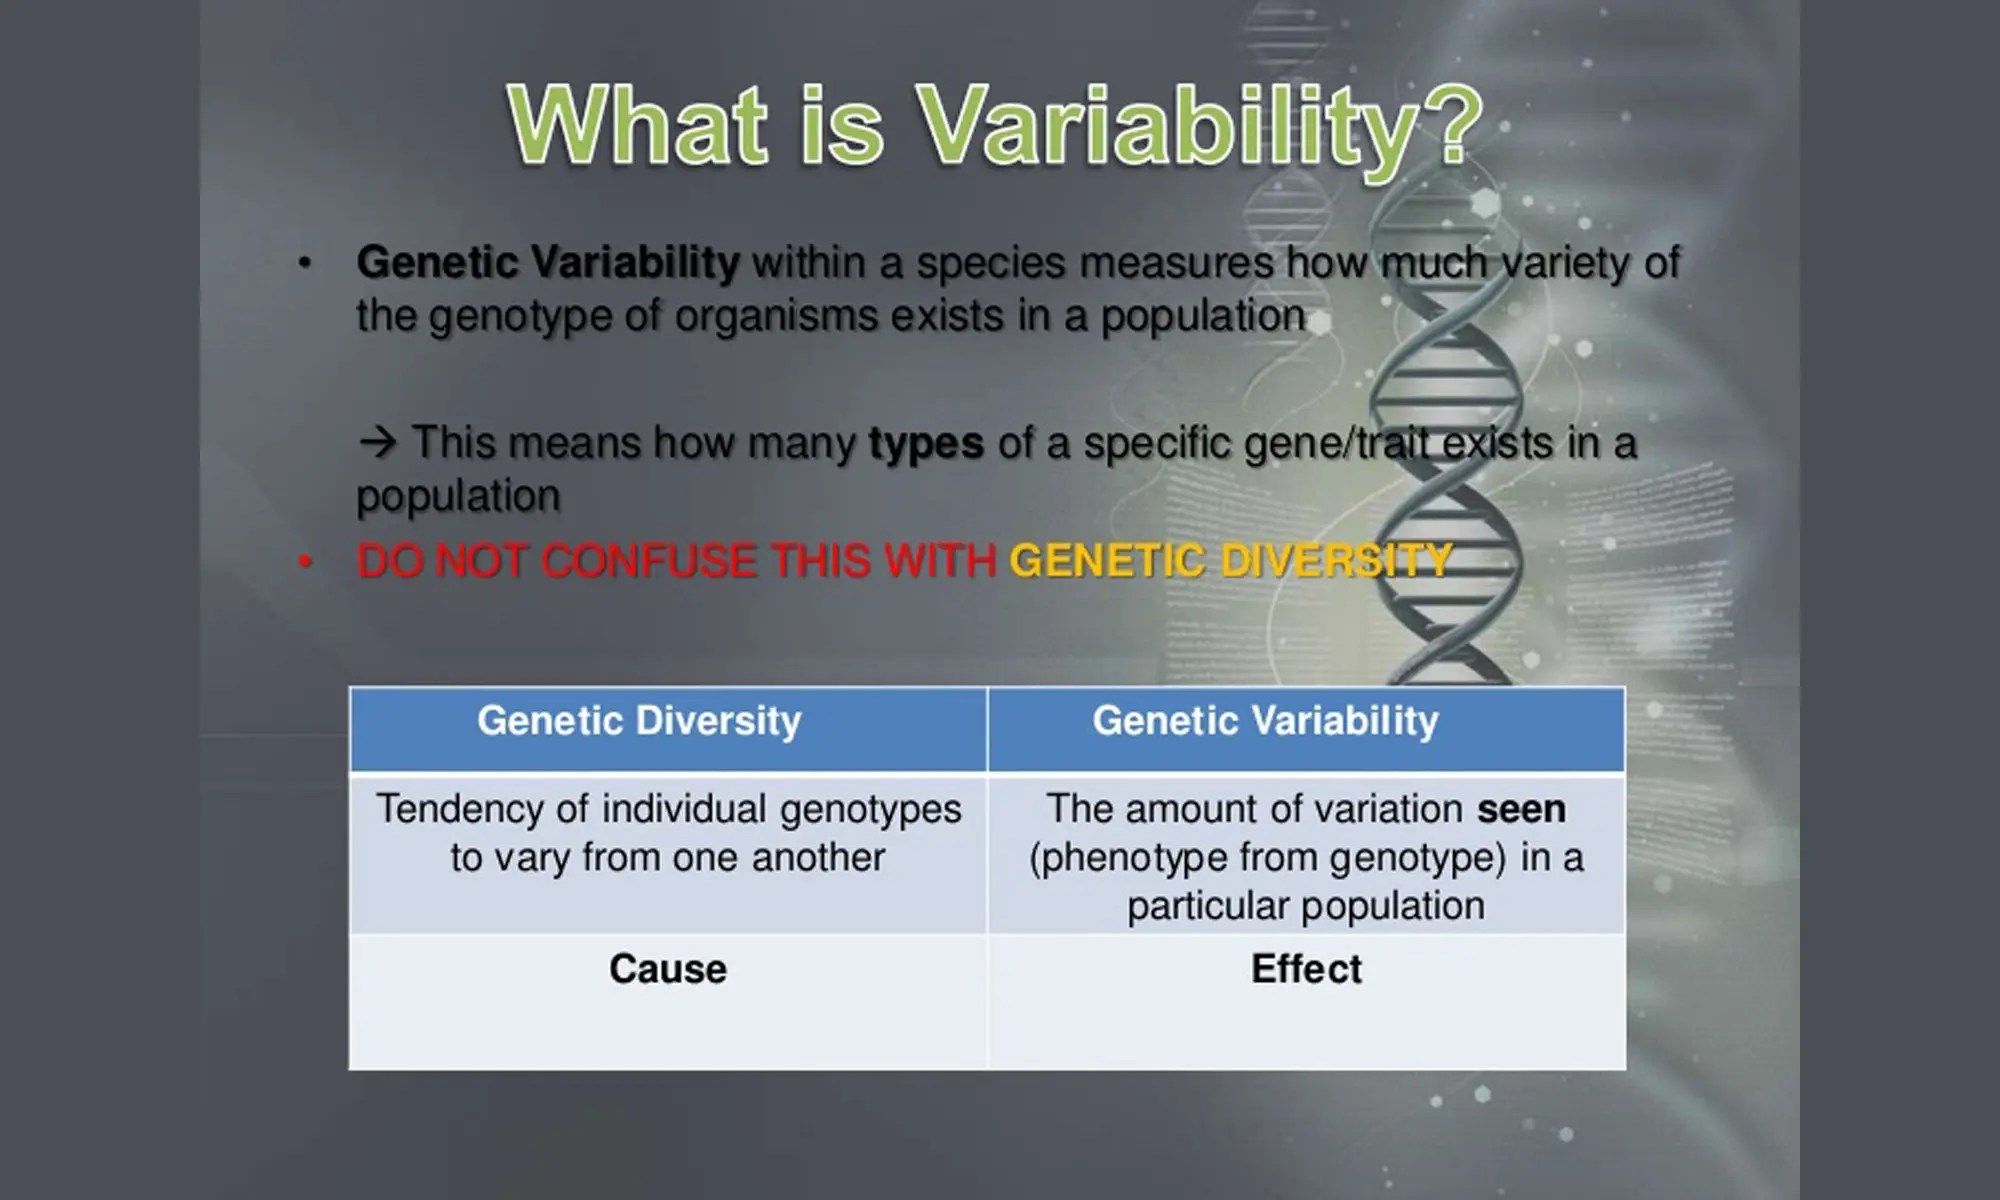 image of genetic variability